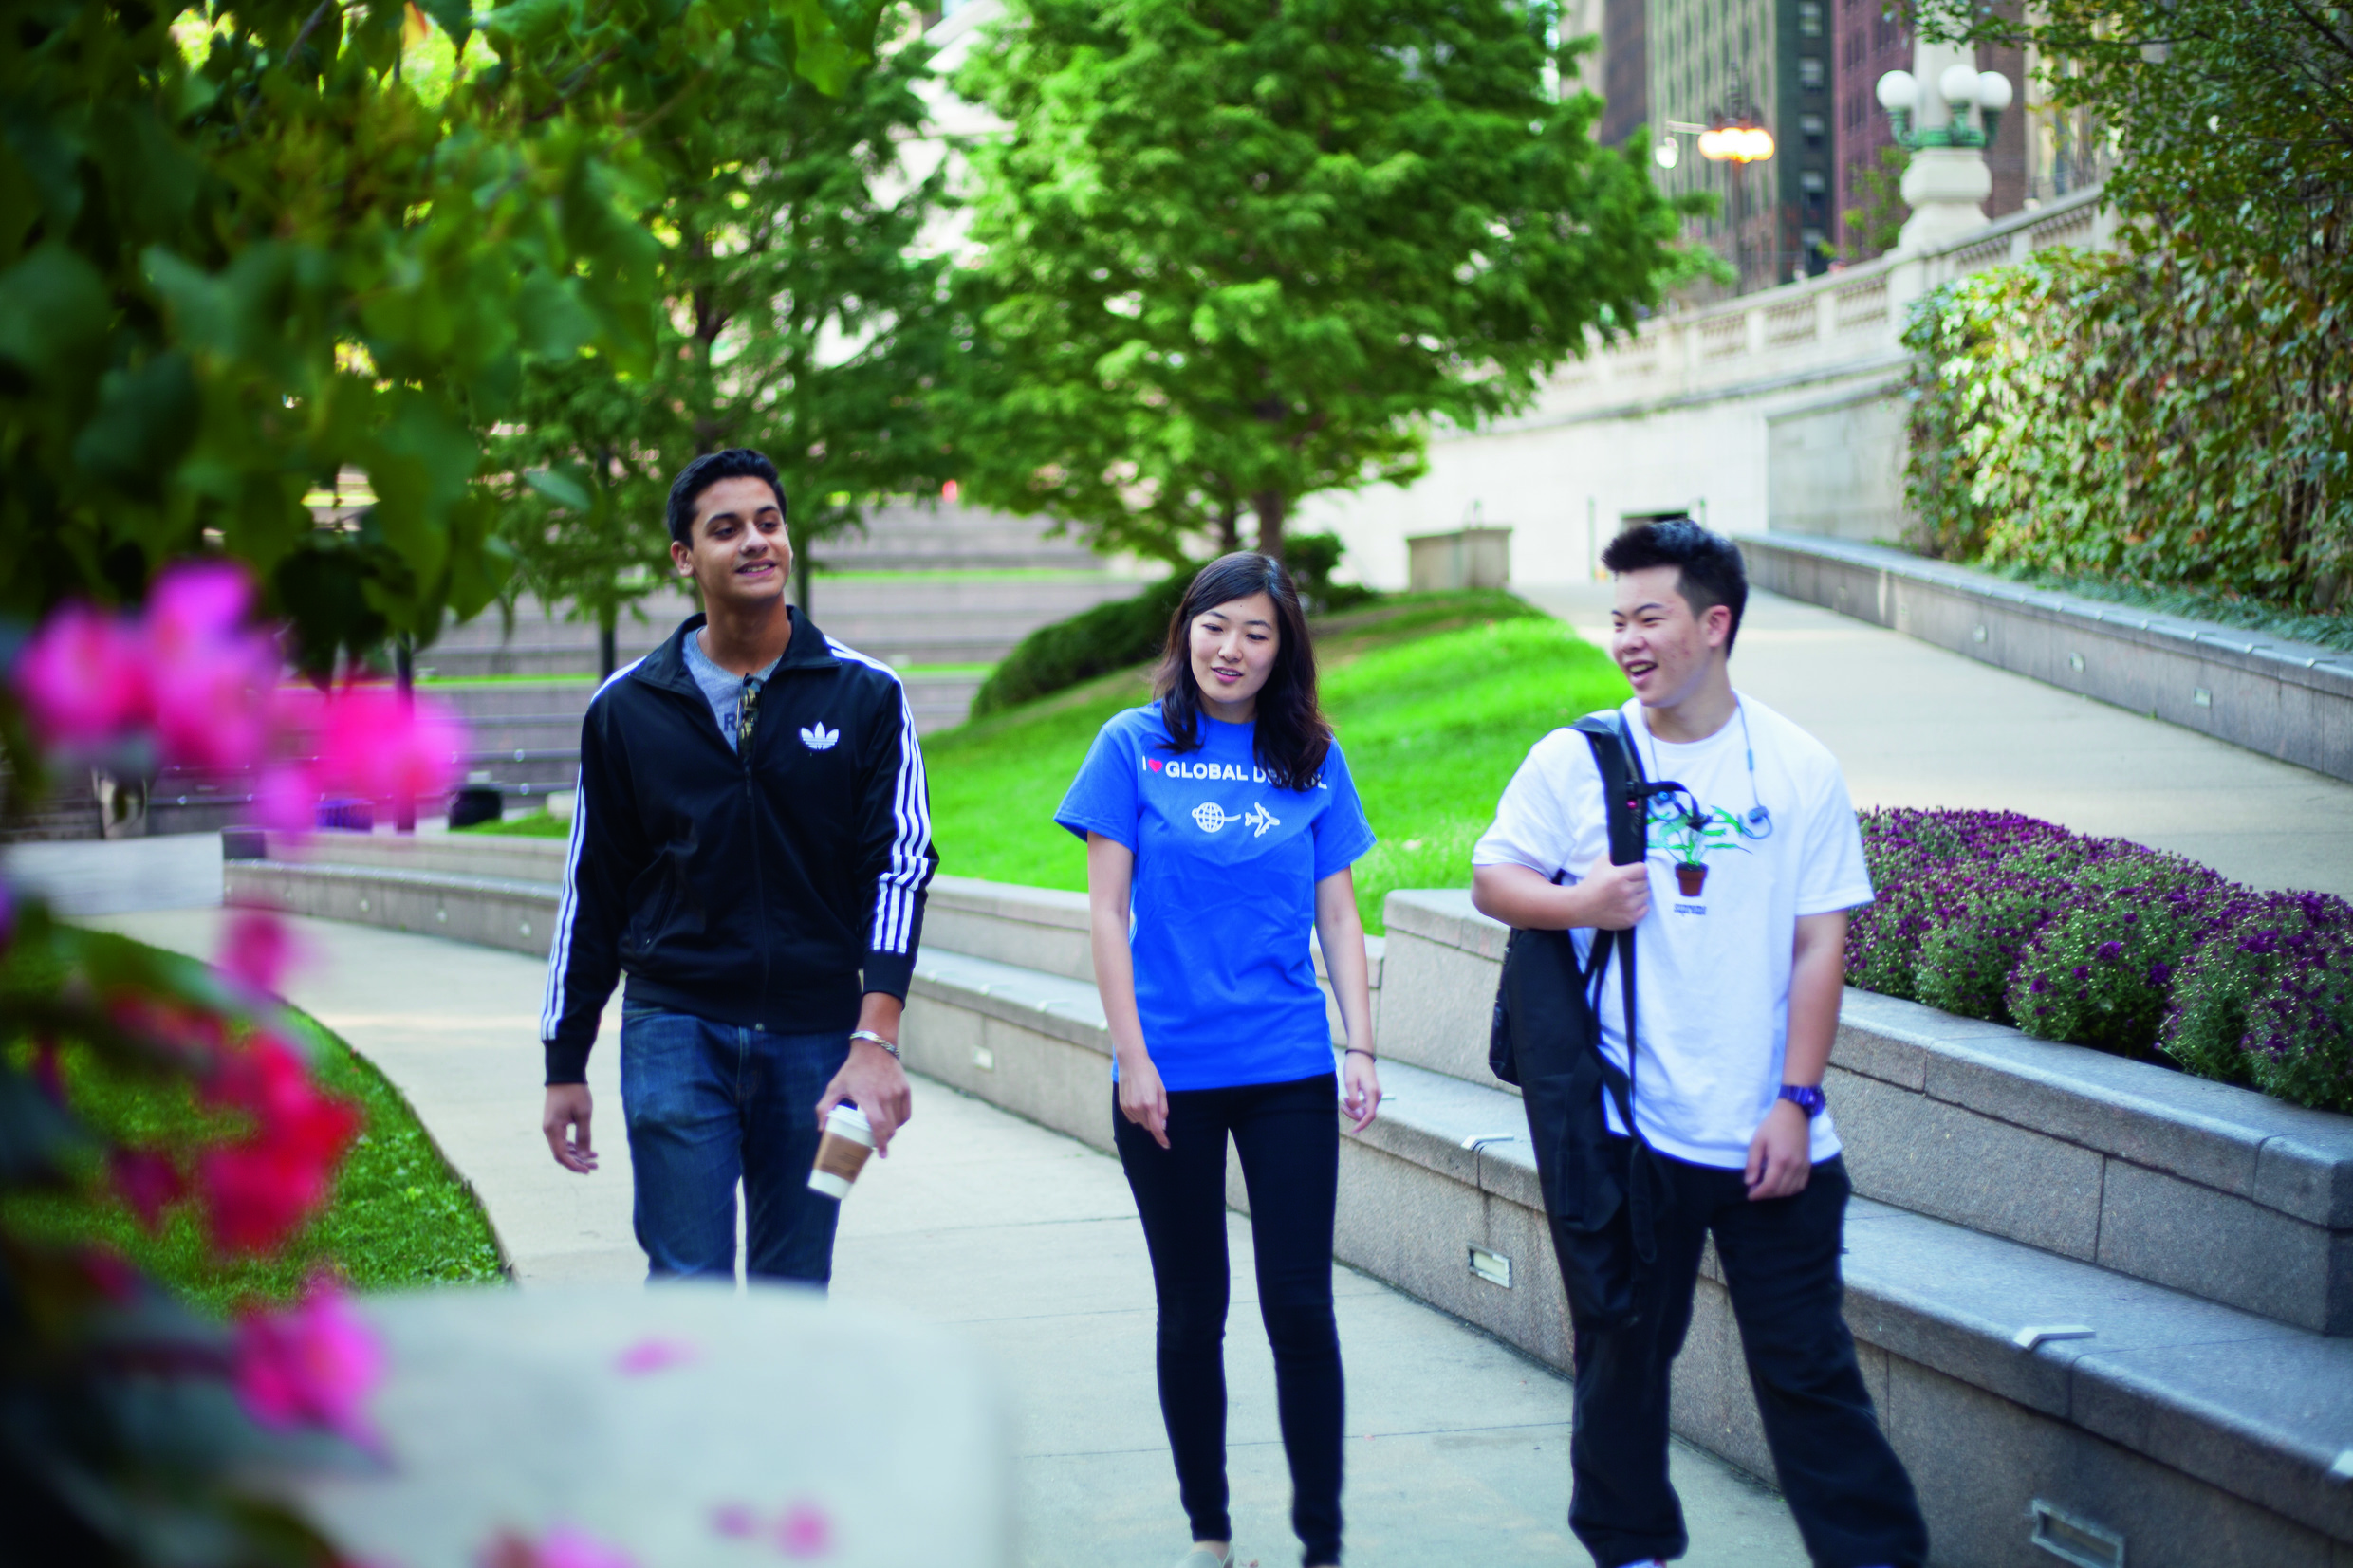 DePaul students walking in the Lincoln Park campus.